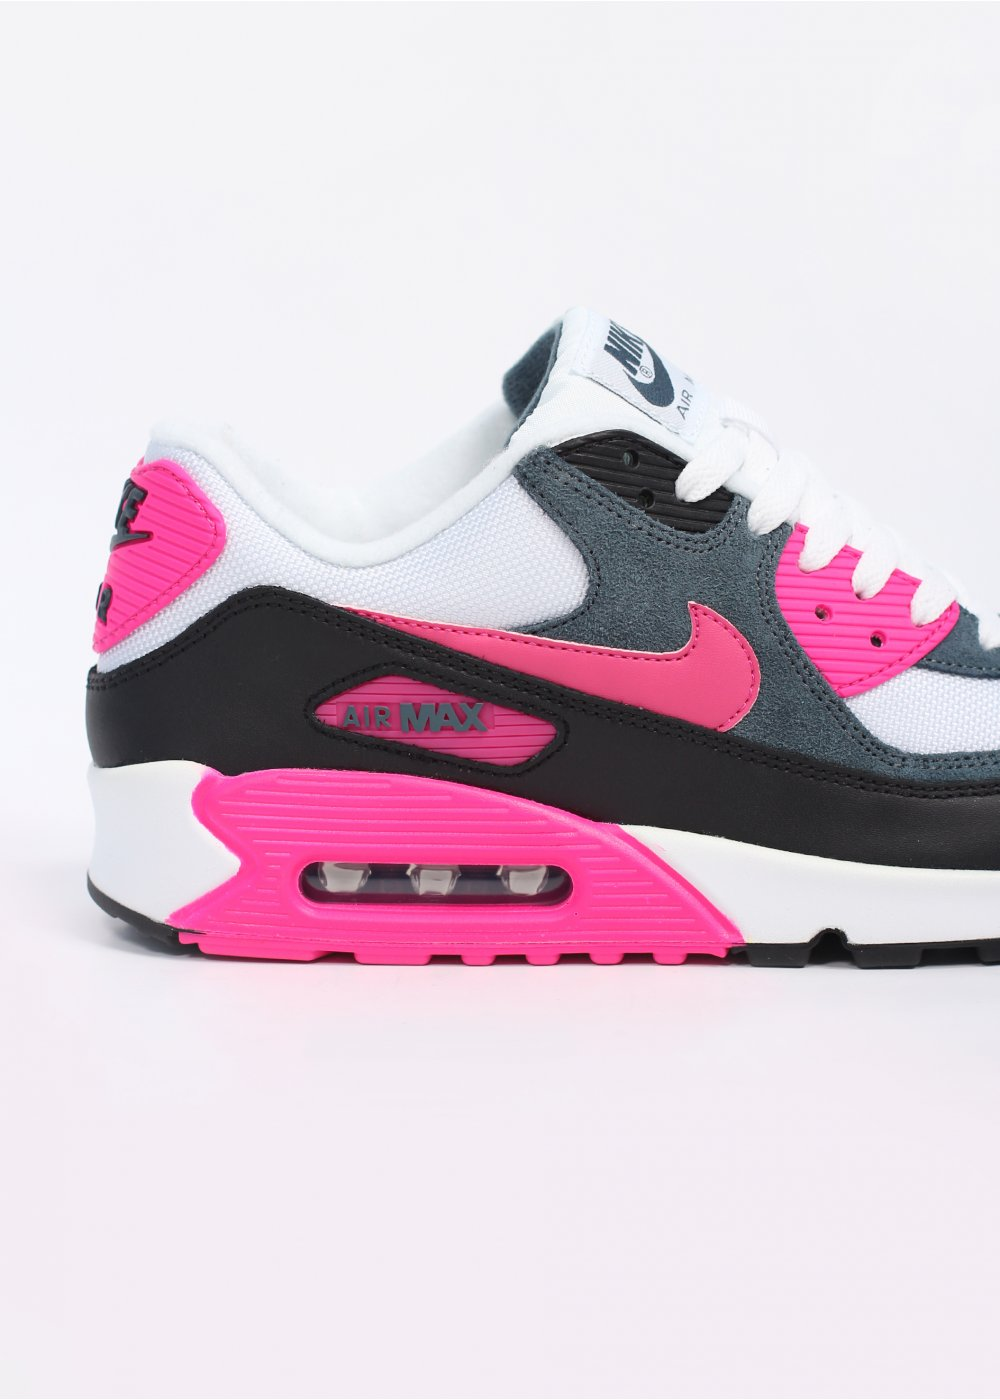 Nike Footwear Air Max 90 Essential Trainers White Pink Foil Black